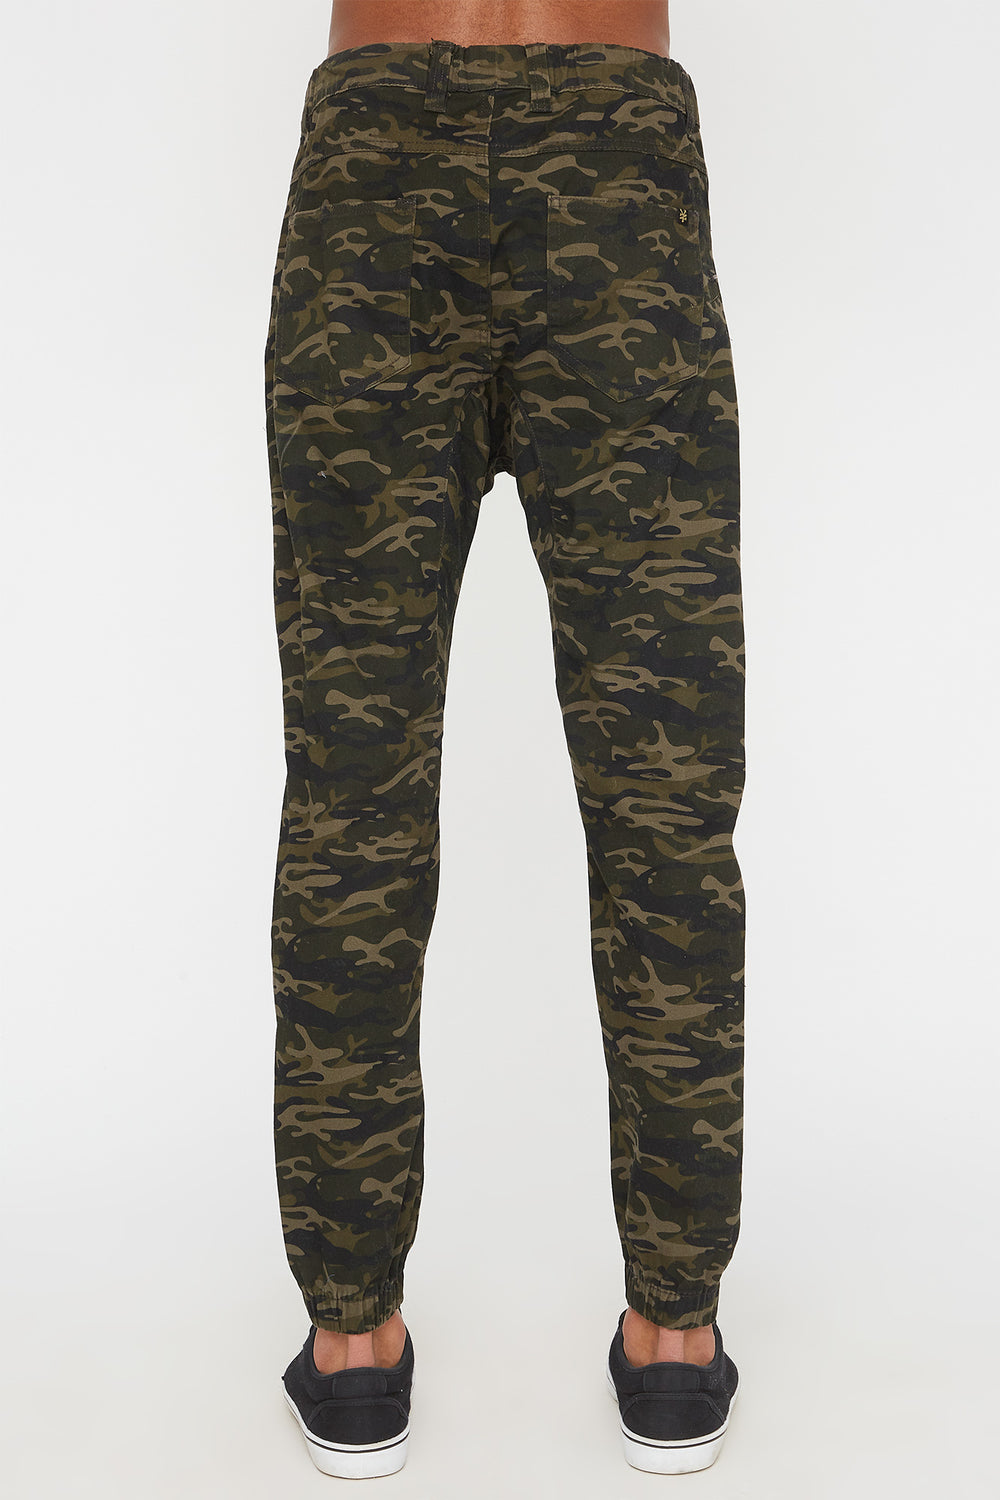 Zoo York Mens 5-Pocket Camo Jogger Camouflage